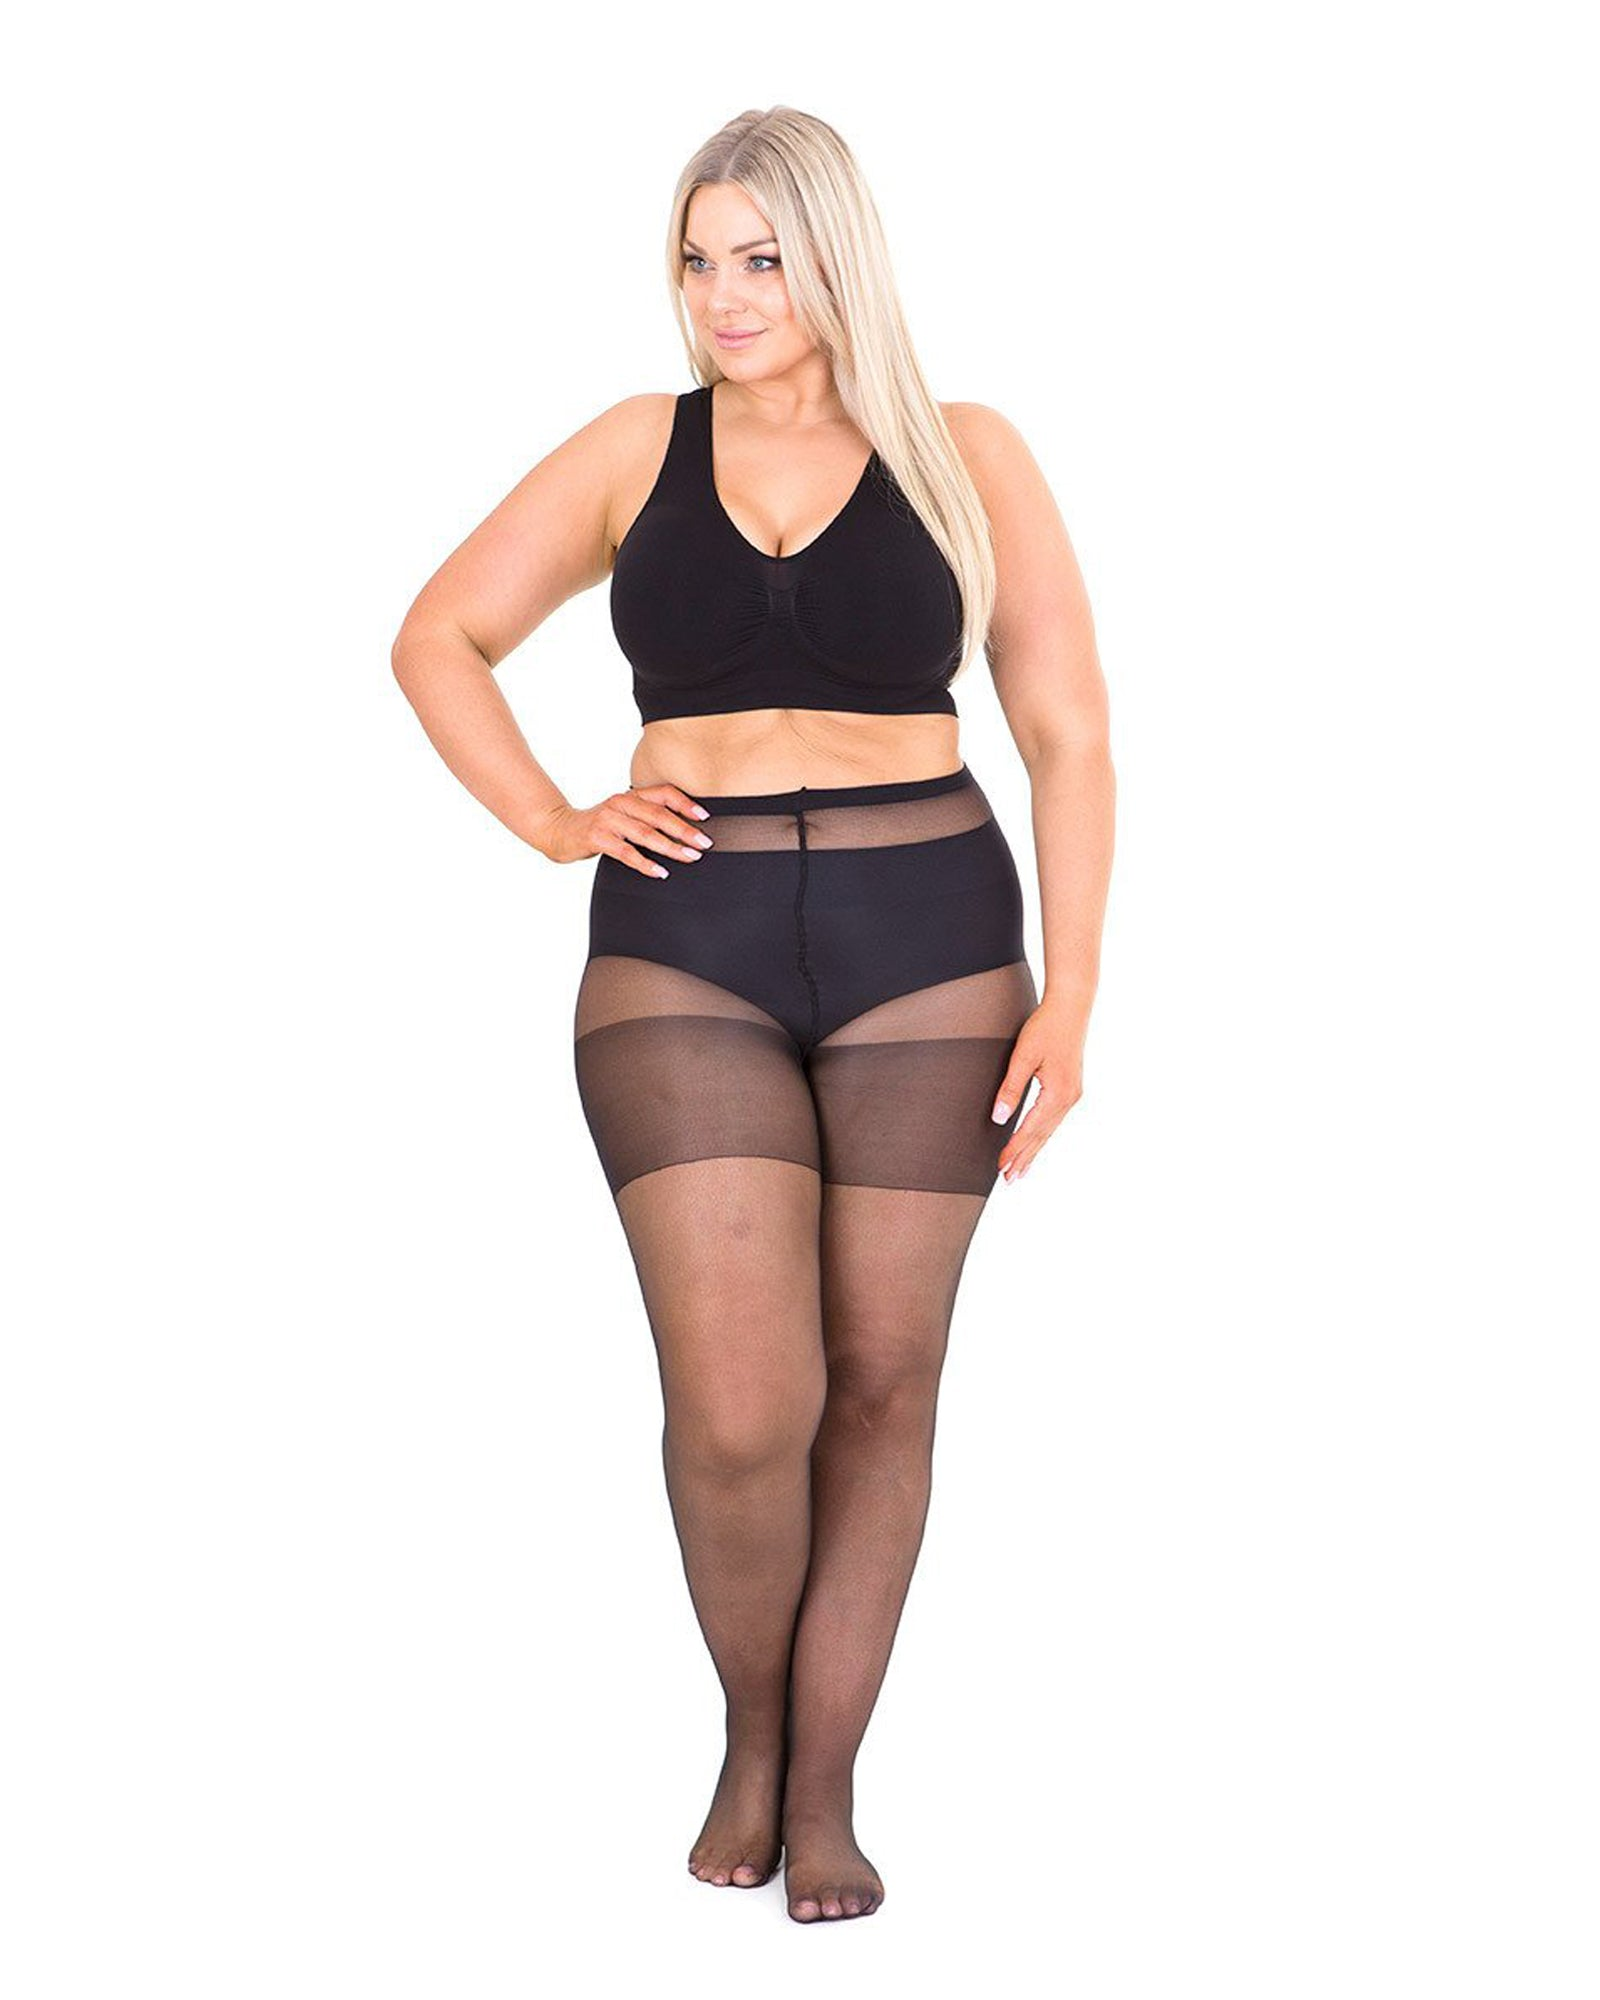 2 Pack Sheer 20 Denier Tights - Black & Nude - BUY 2 & SAVE $10